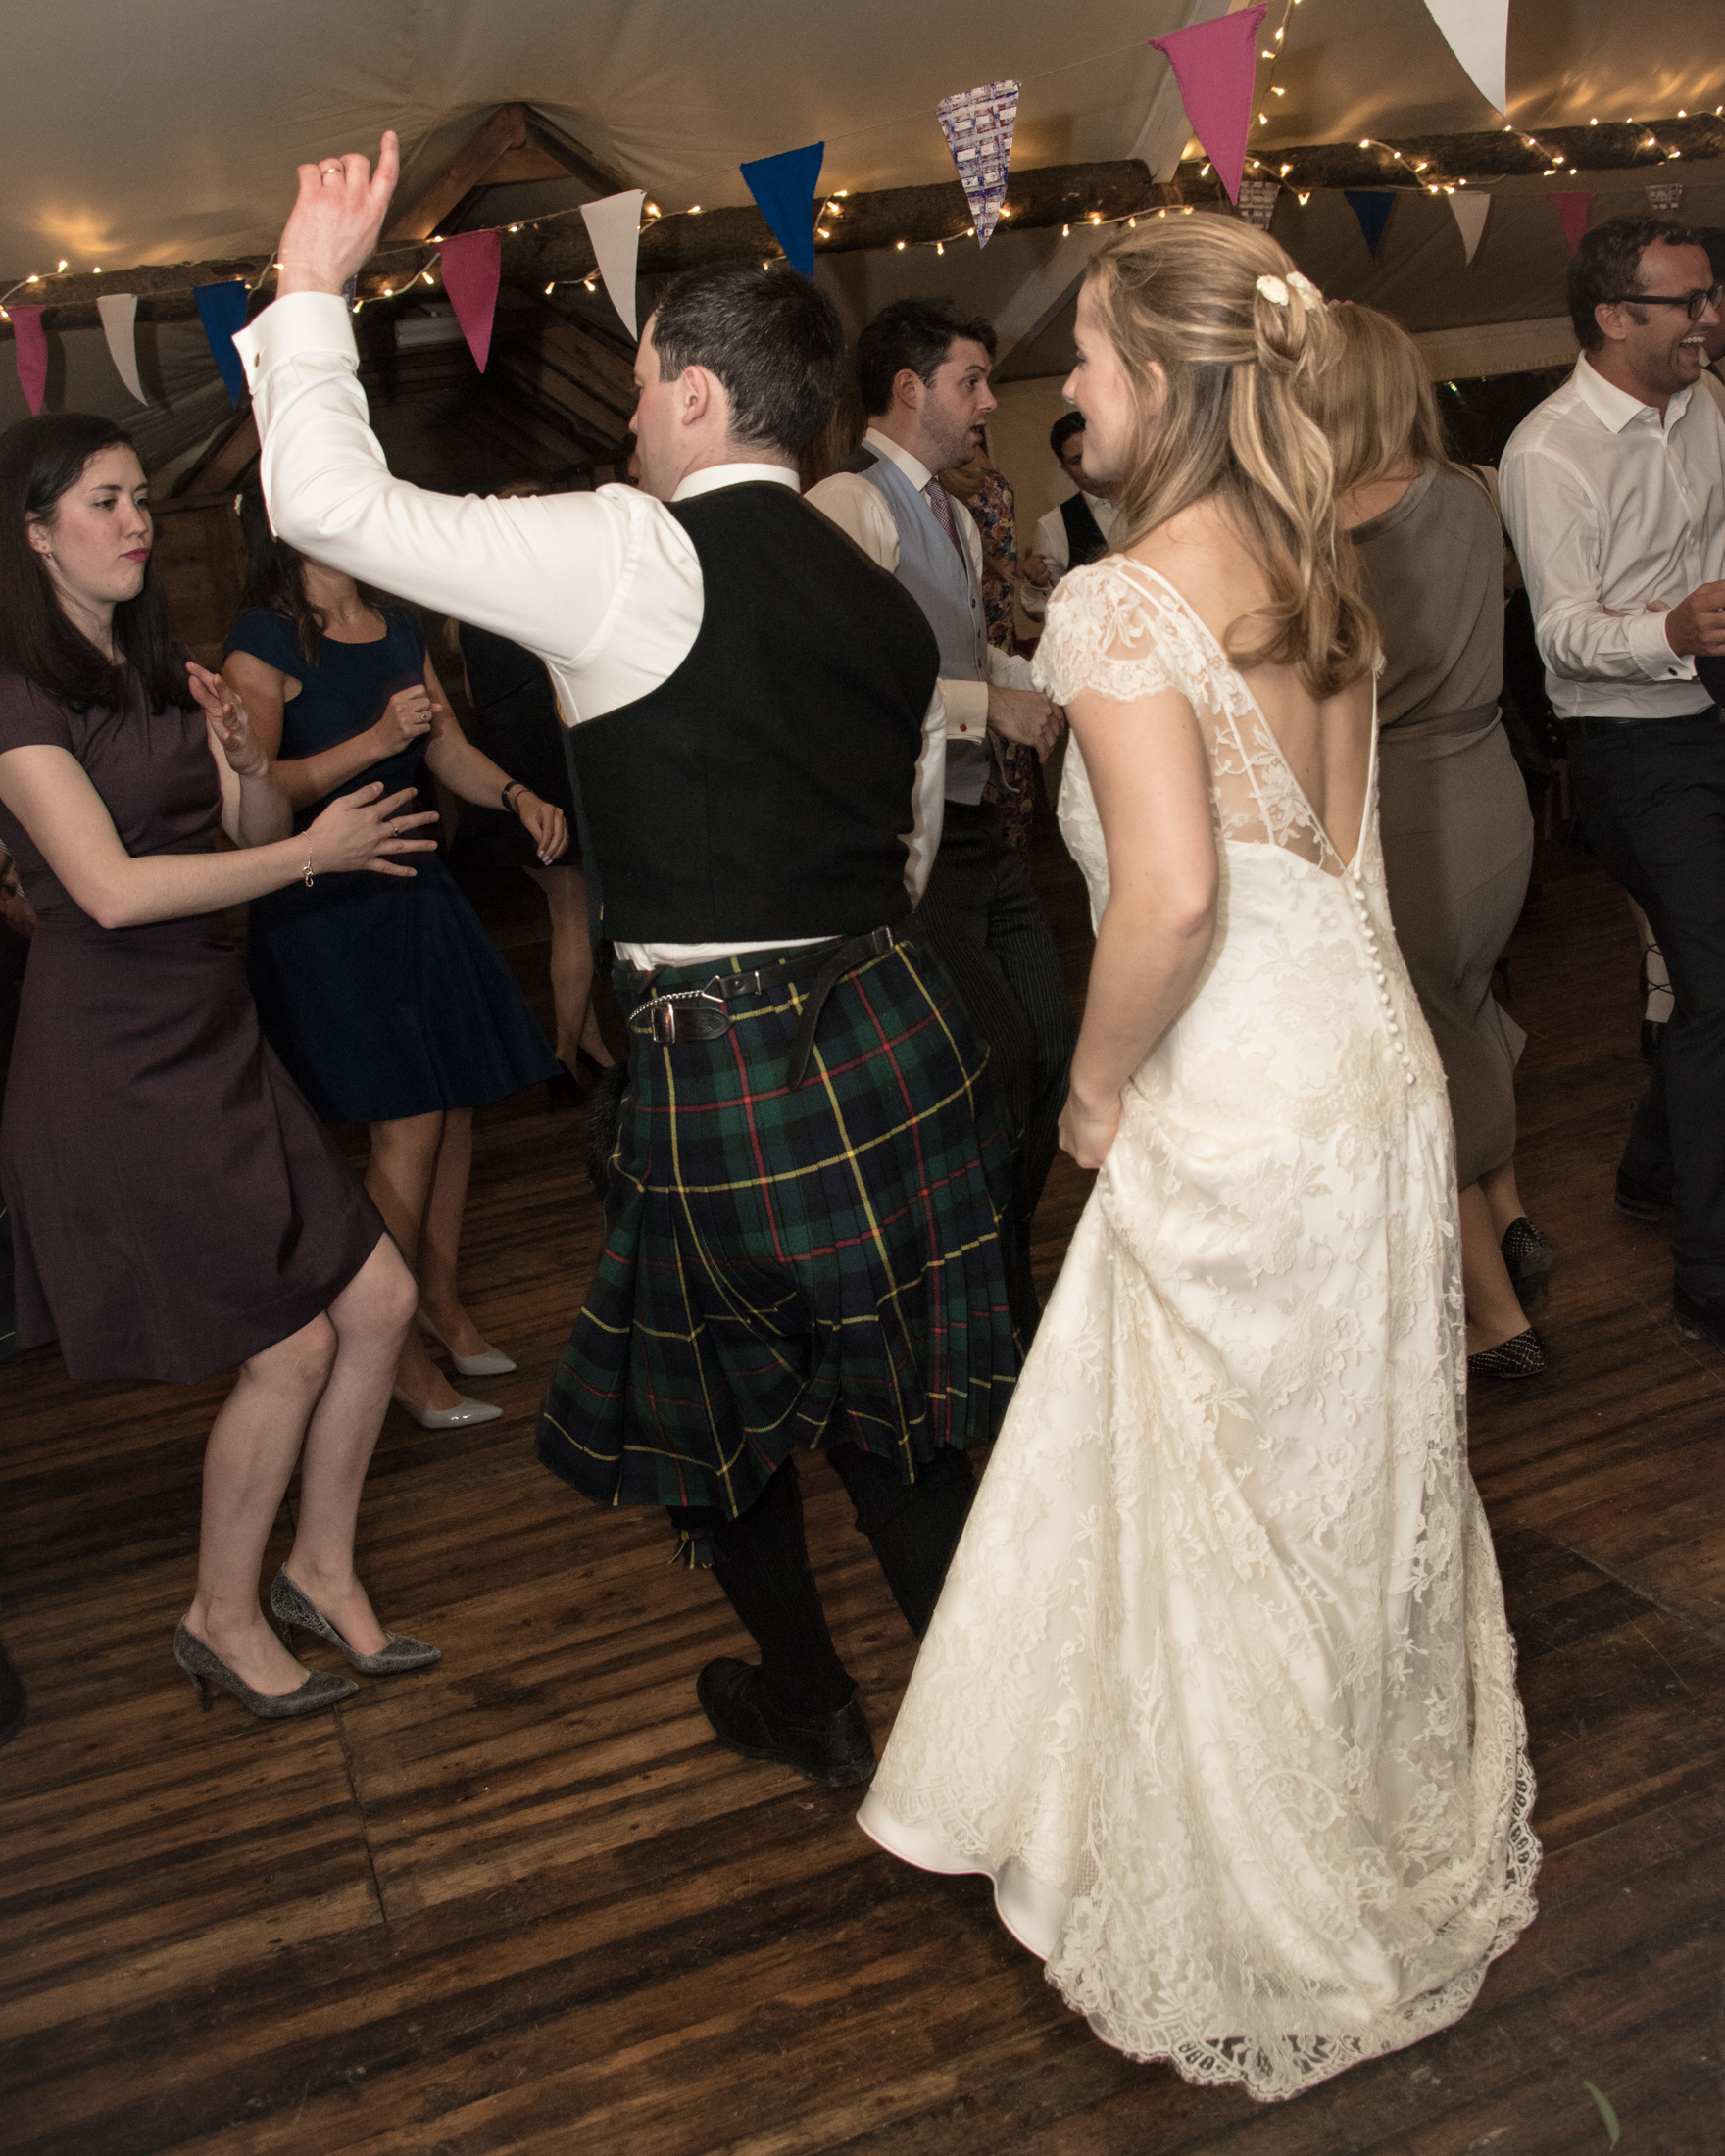 2016-04-02 SIONED AND NEIL FALKLAND MYRES CASTLE220036.jpg